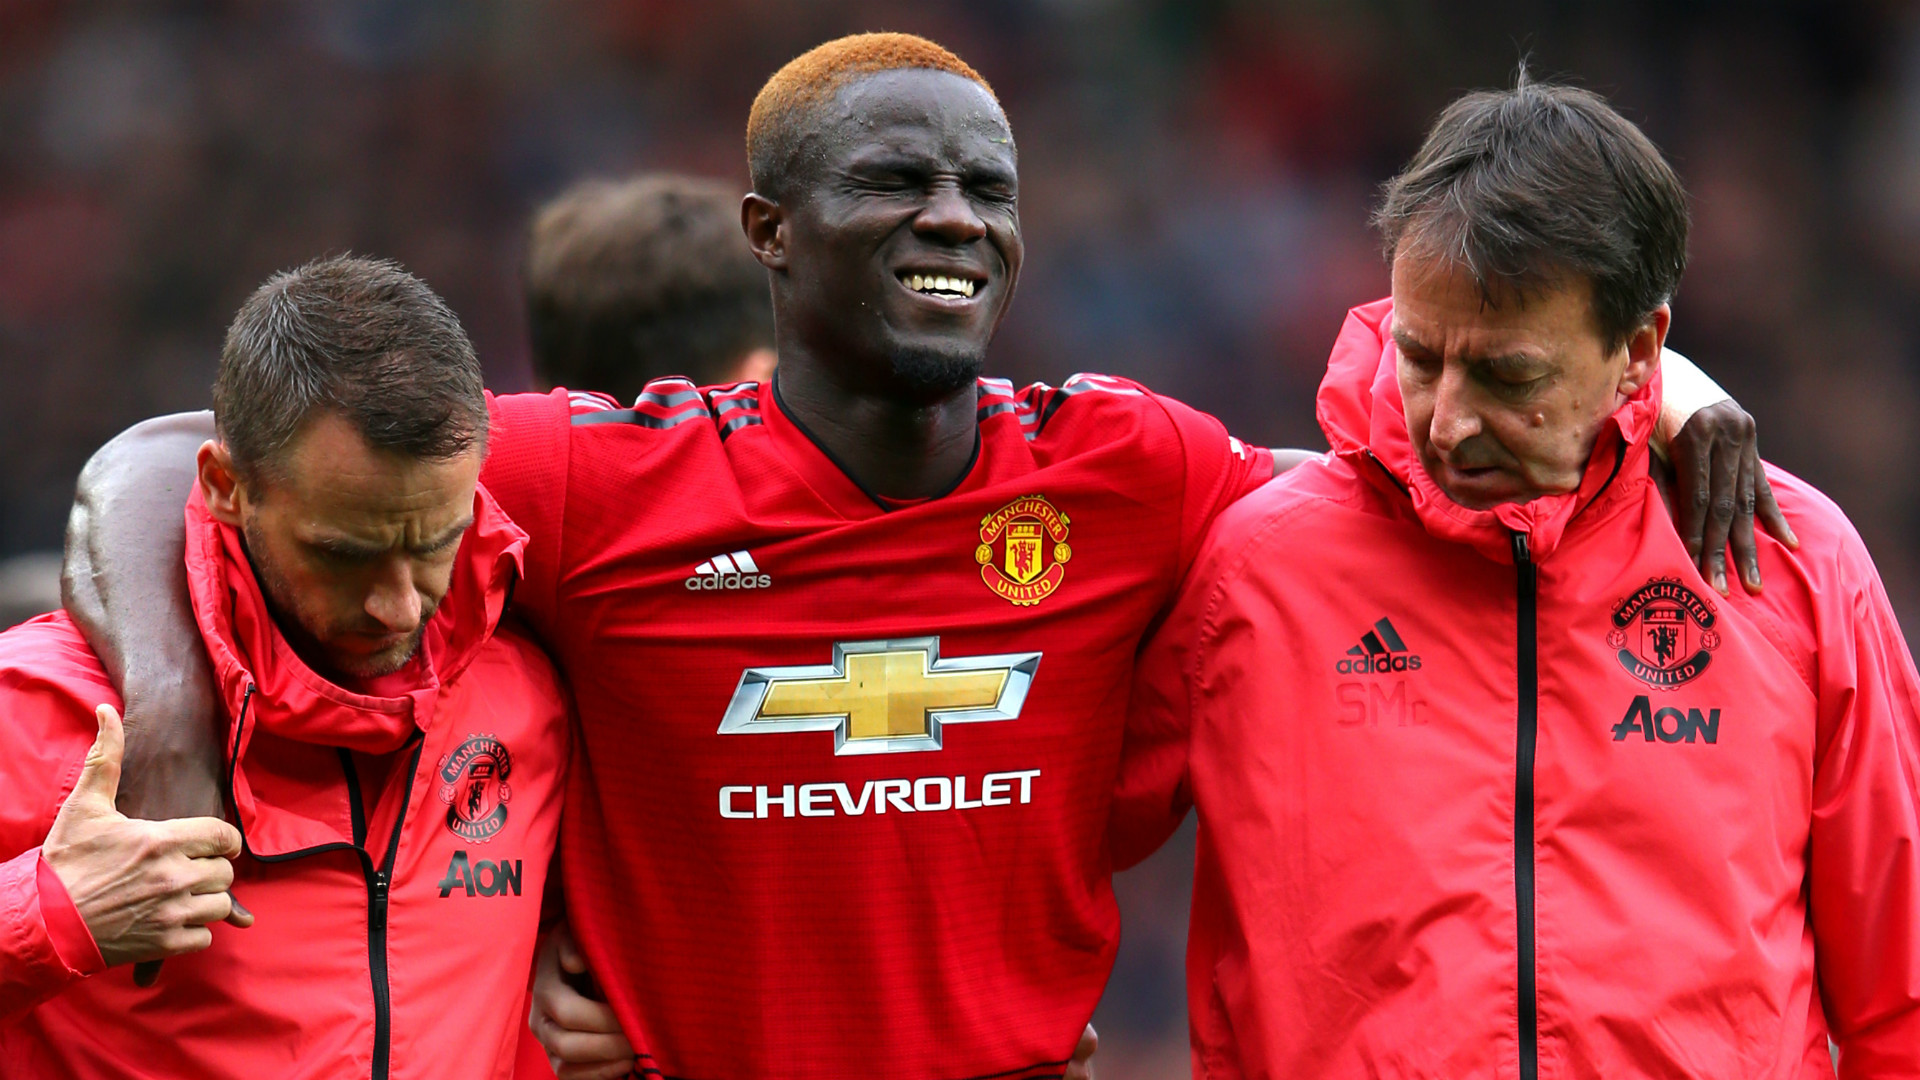 United rest Manchester Eric Bailly defender out ruled for